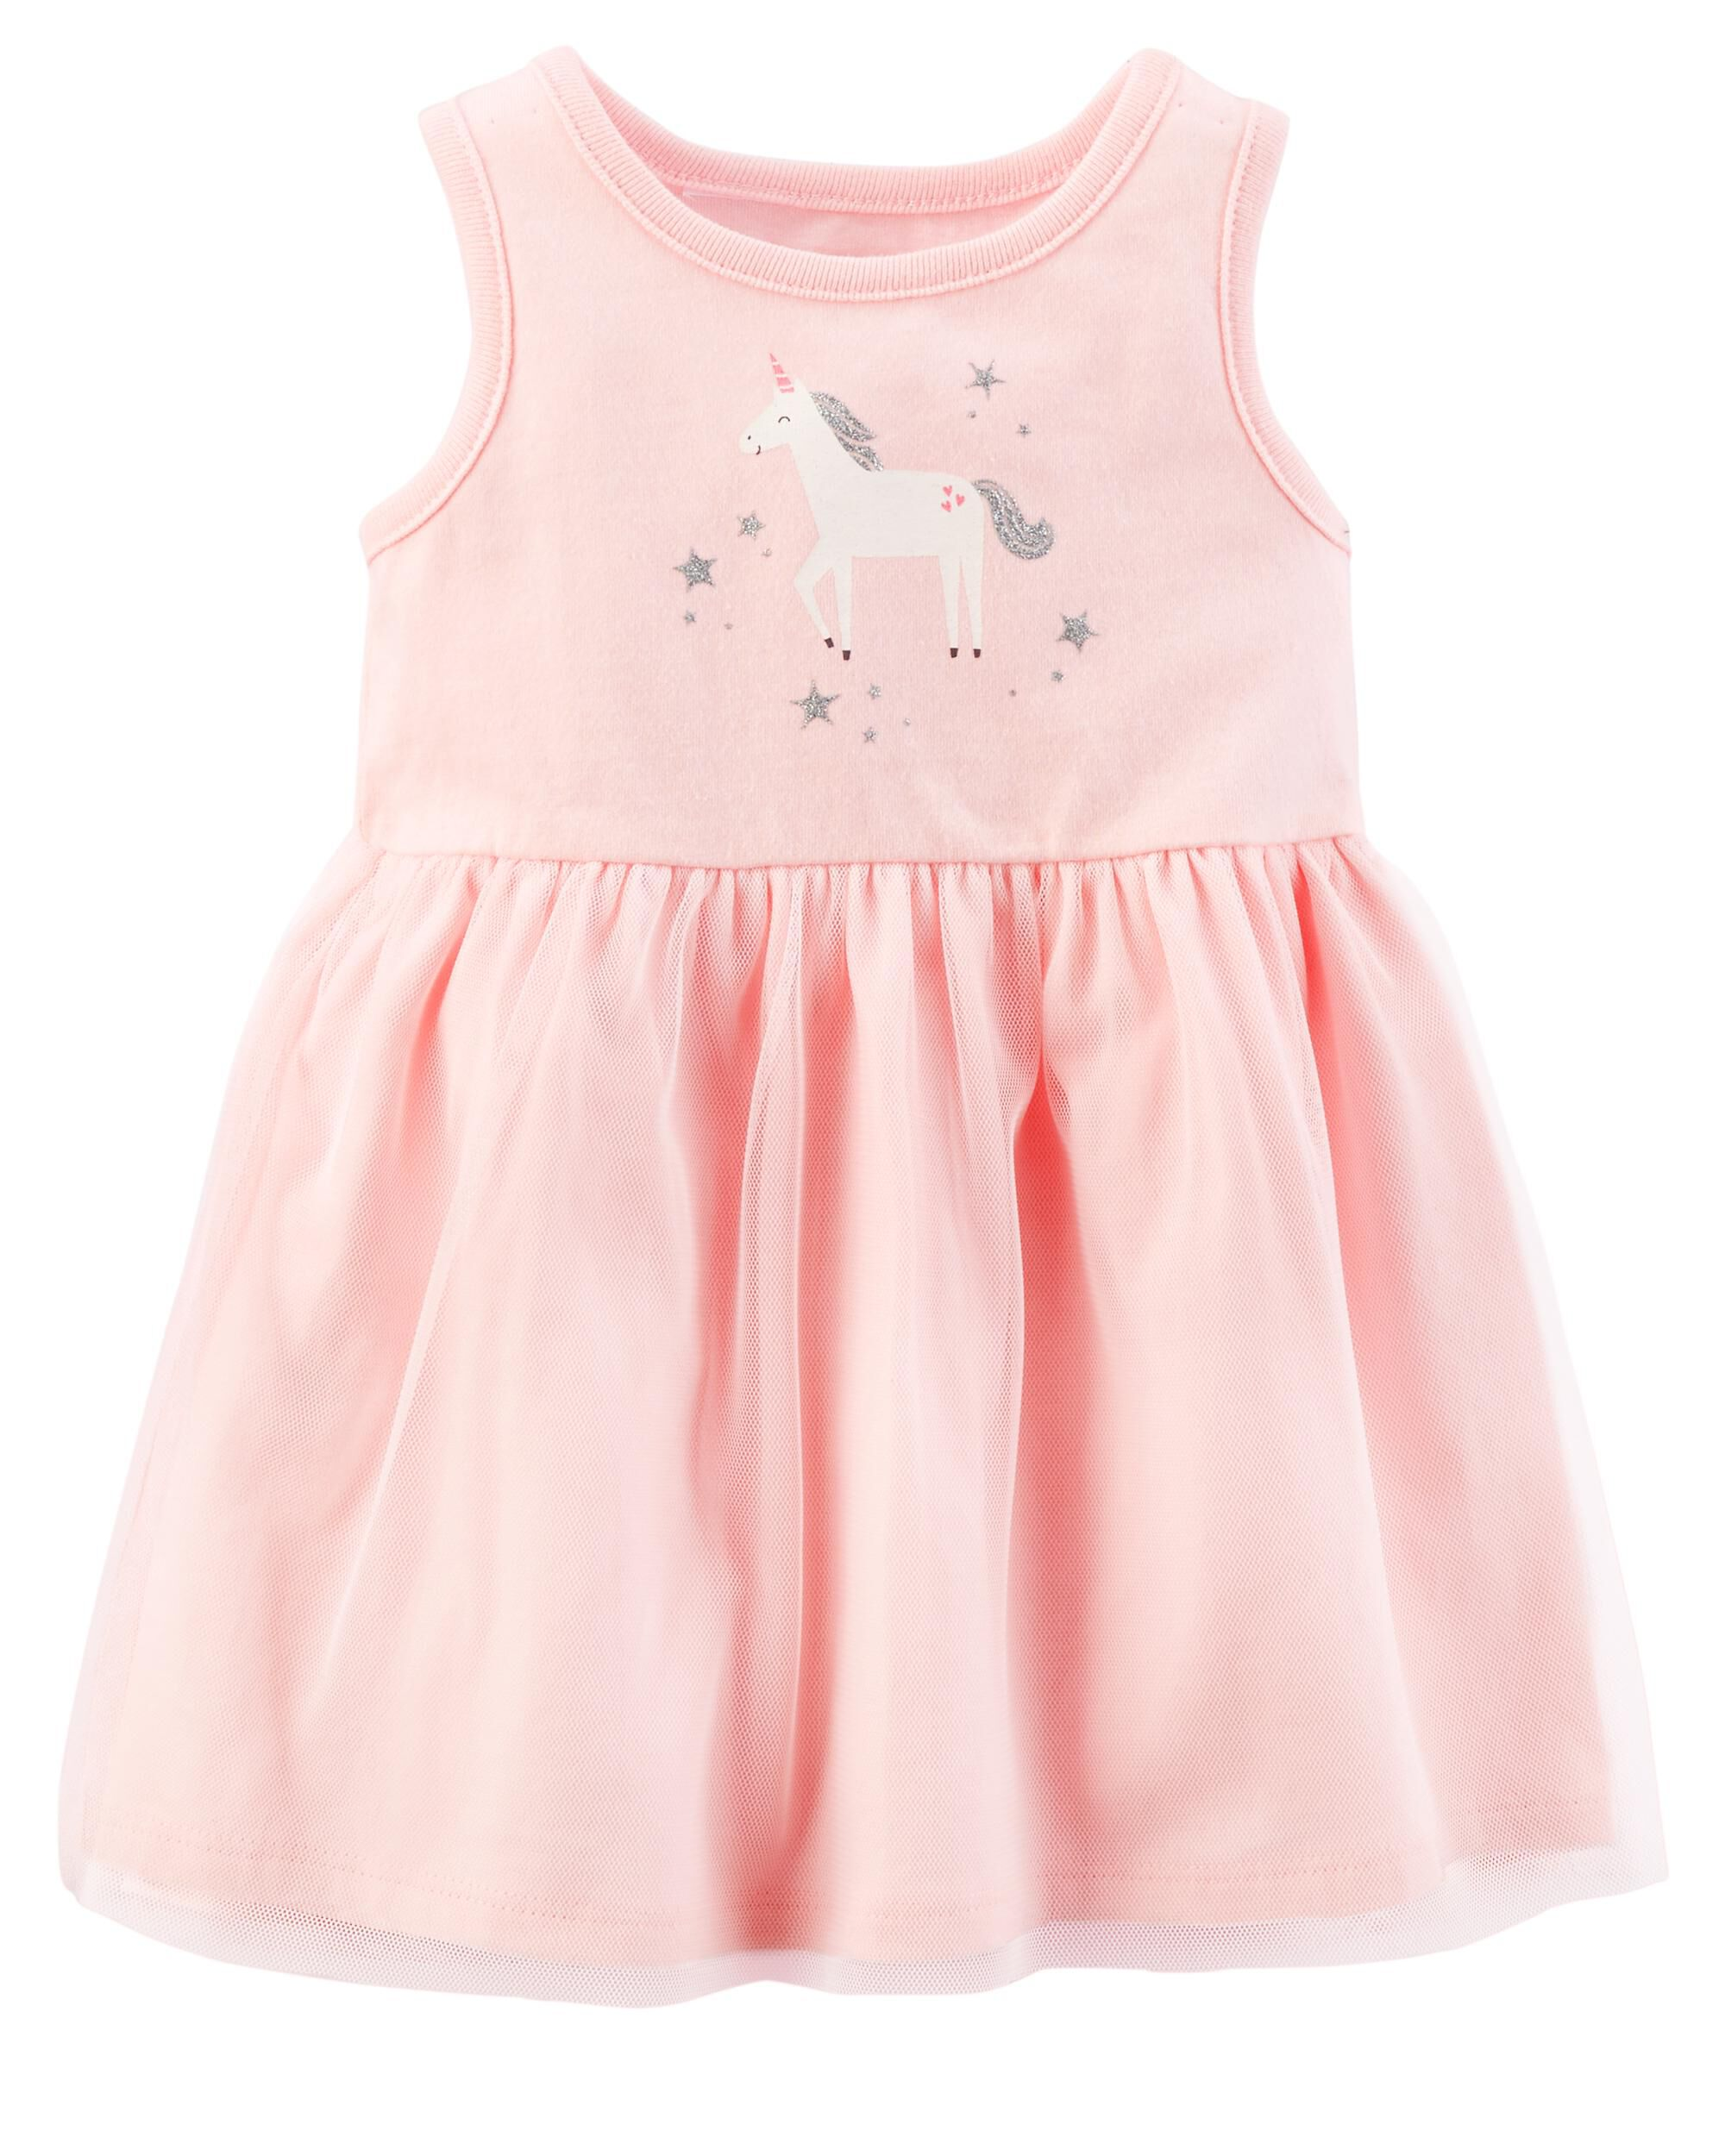 Carters 24 Months Skirt Girls' Clothing (newborn-5t)